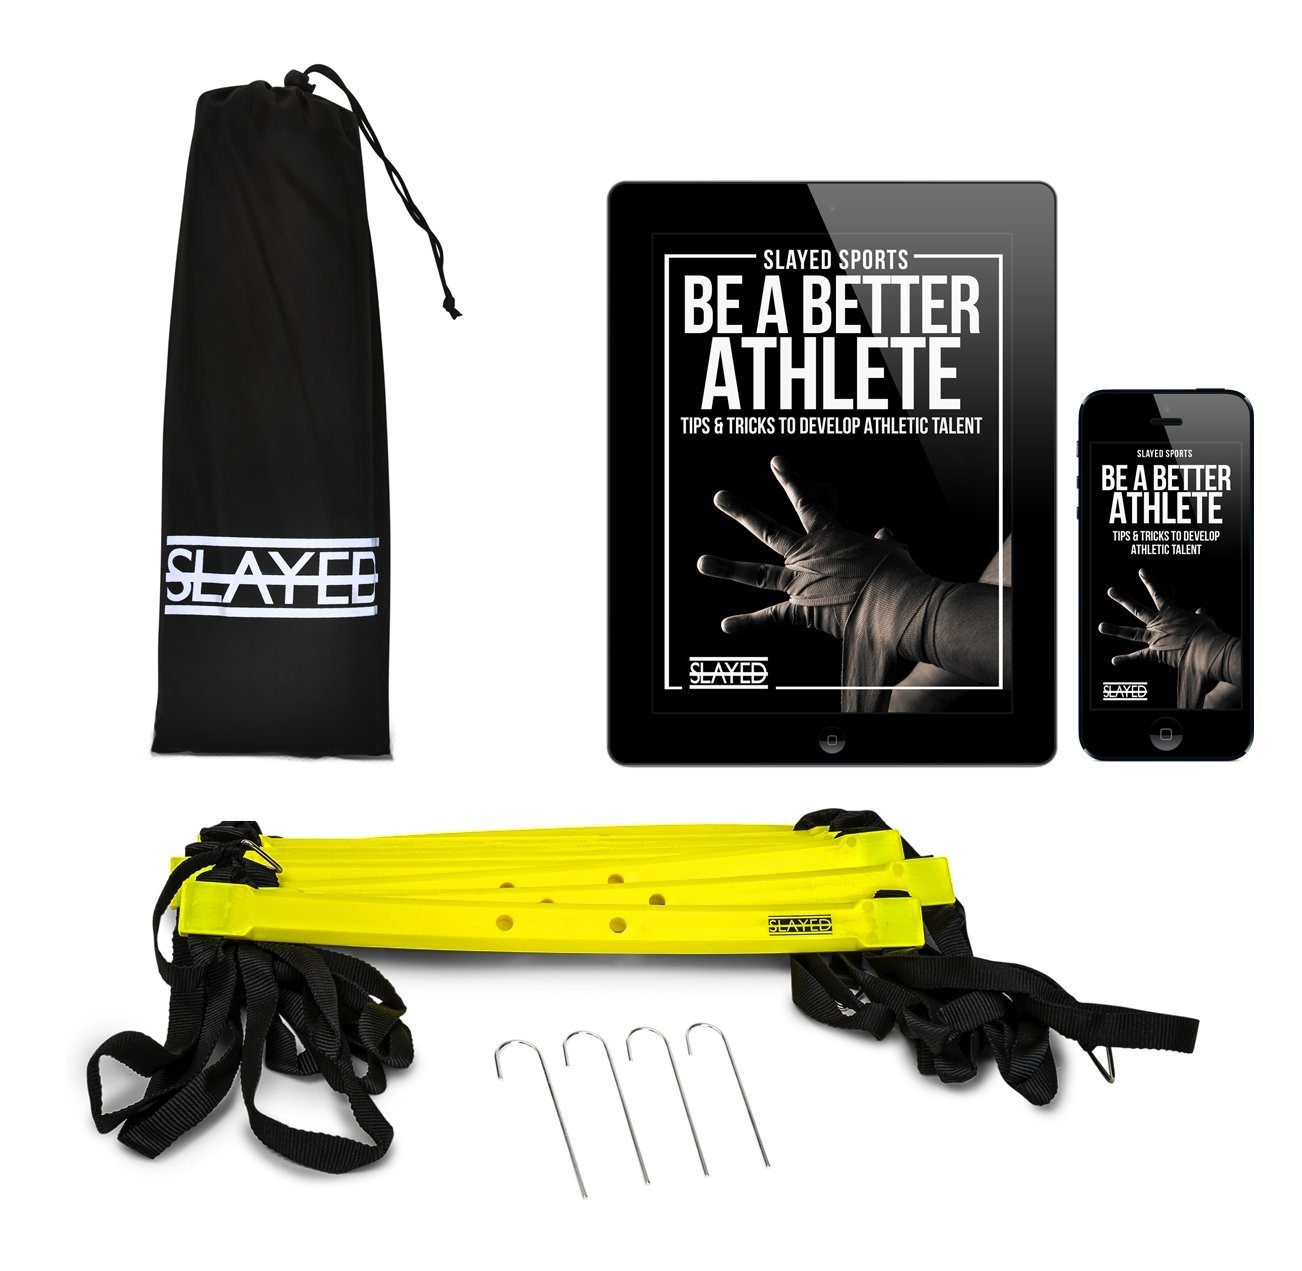 Slayed Sports AGILITY LADDER (15FT) by Workout Equipment Includes Metal Pegs, Carry Bag, and BONUS E-book with Video of Agility Drills and Athletic Development Tips |